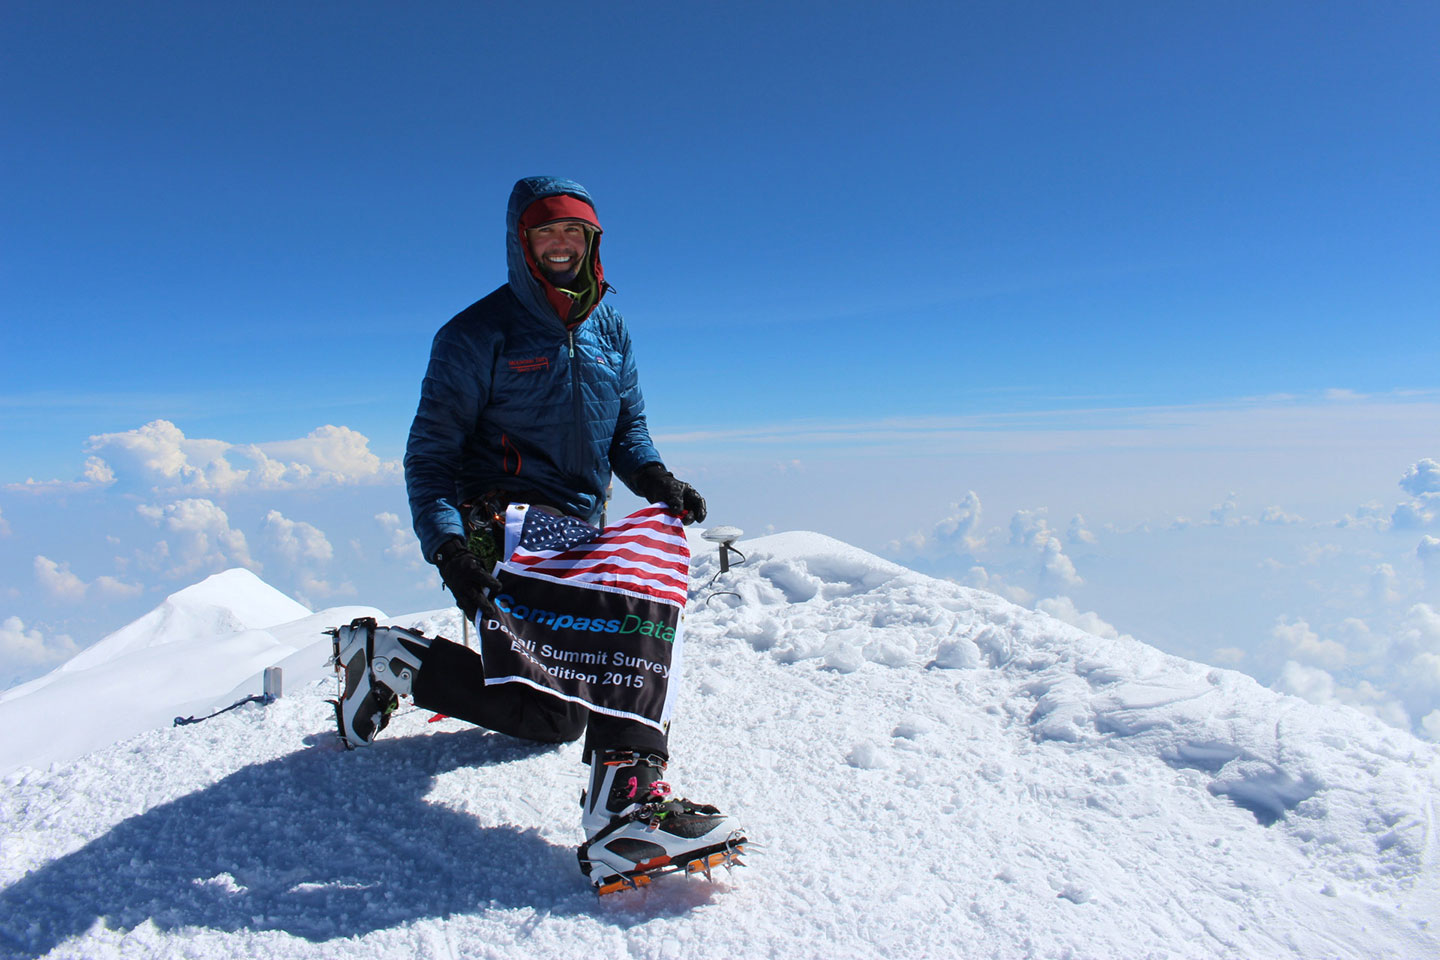 GPS survey party chief Blaine Horner reaches the summit of Denali, establishing its official elevation of 20,310 feet.